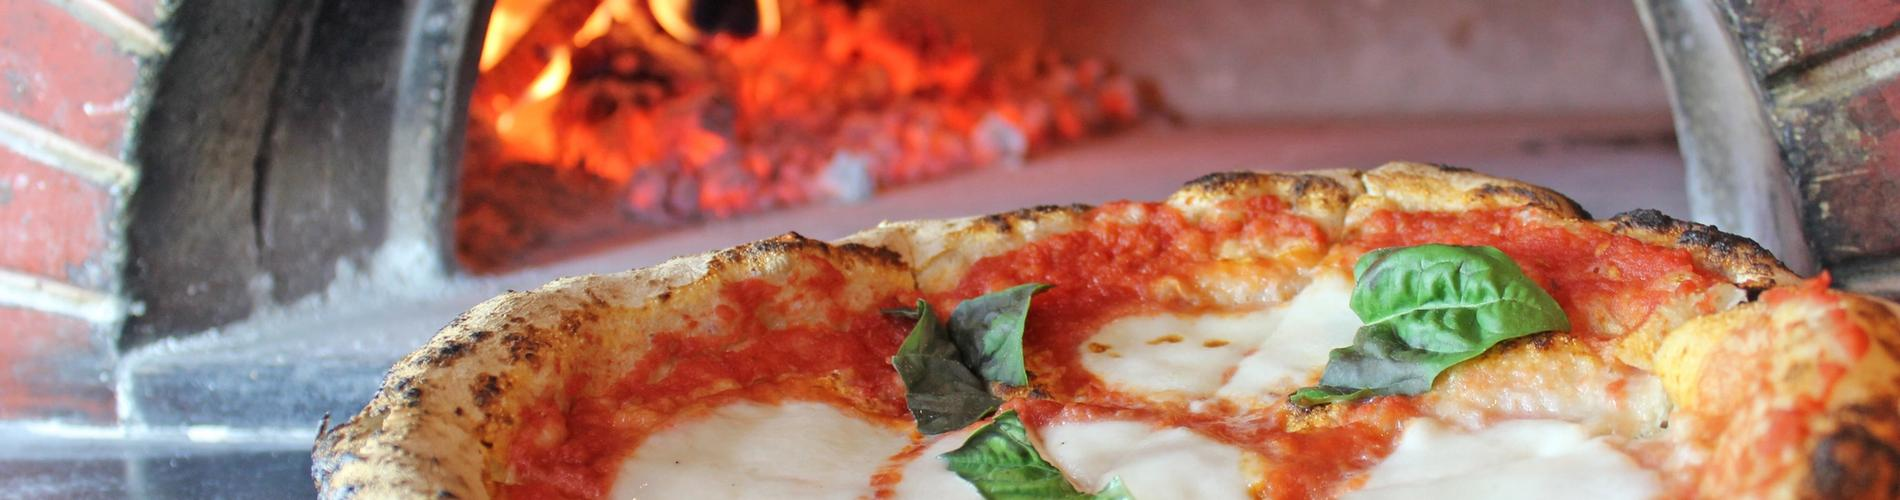 Hot Neapolitan Pizza - Tampa Bay Area